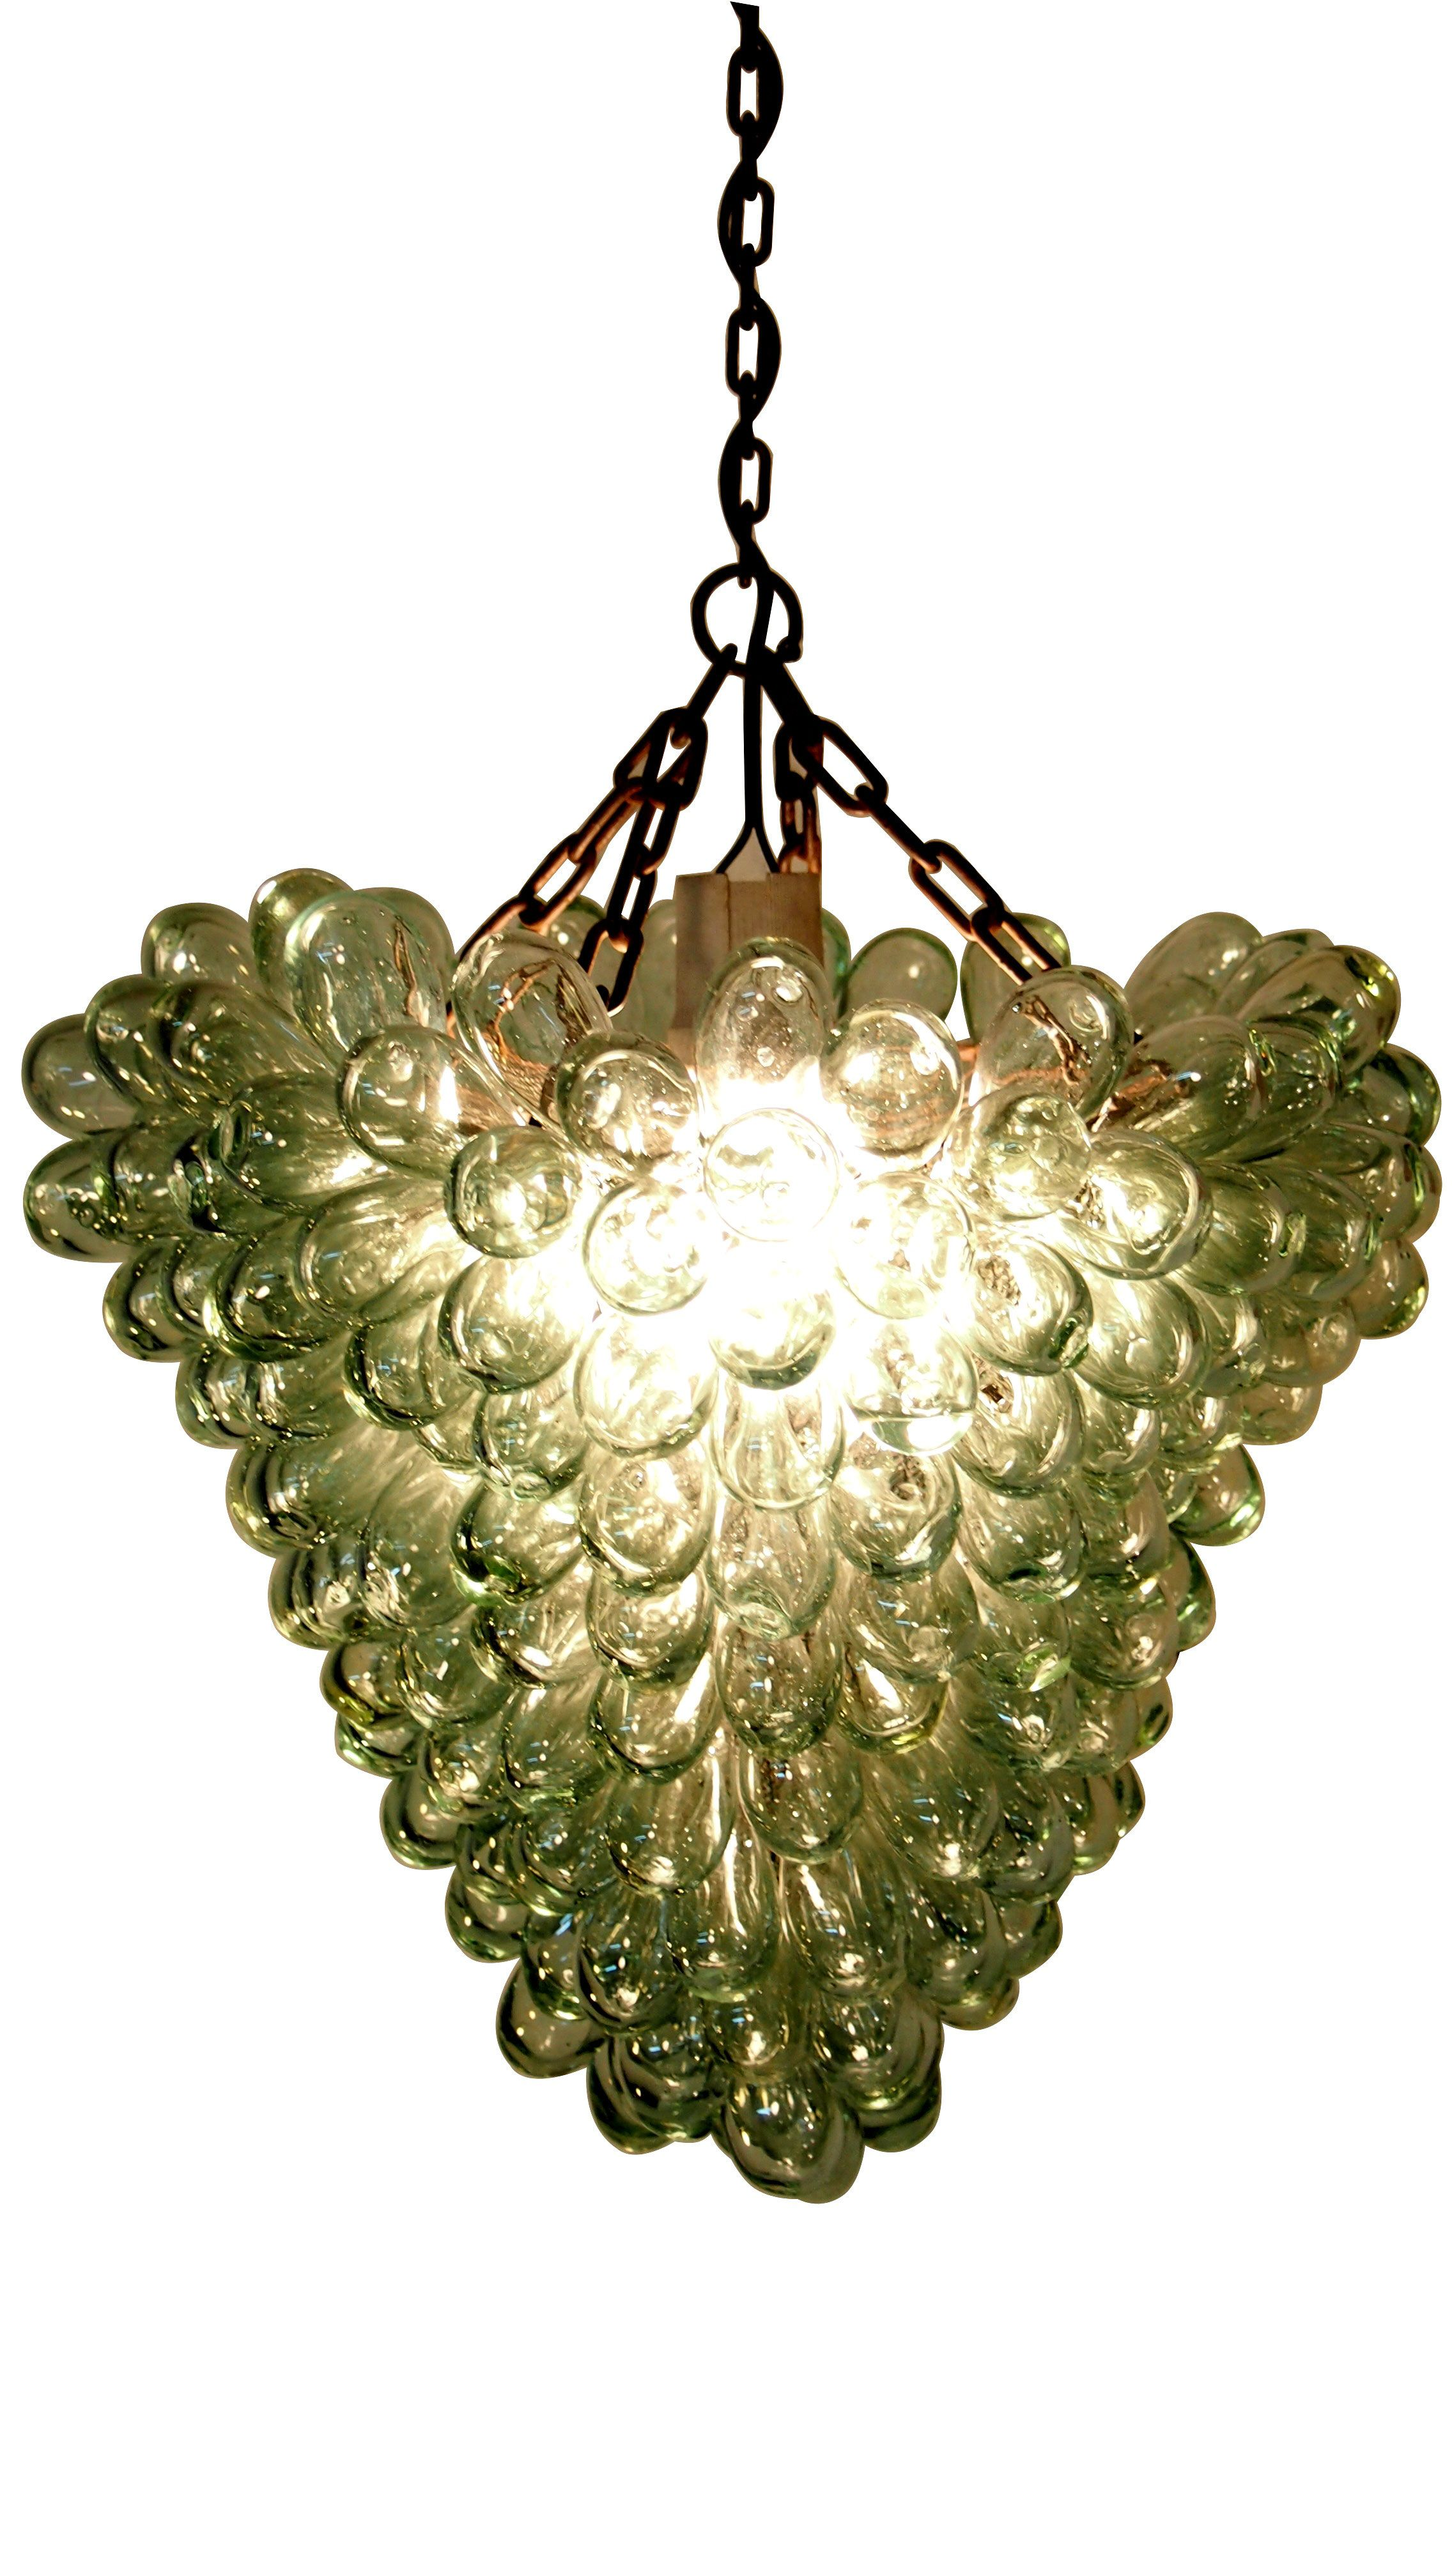 baroque chandeliers warehouse item expand for french click old to full brass vintage the chandelier sale light